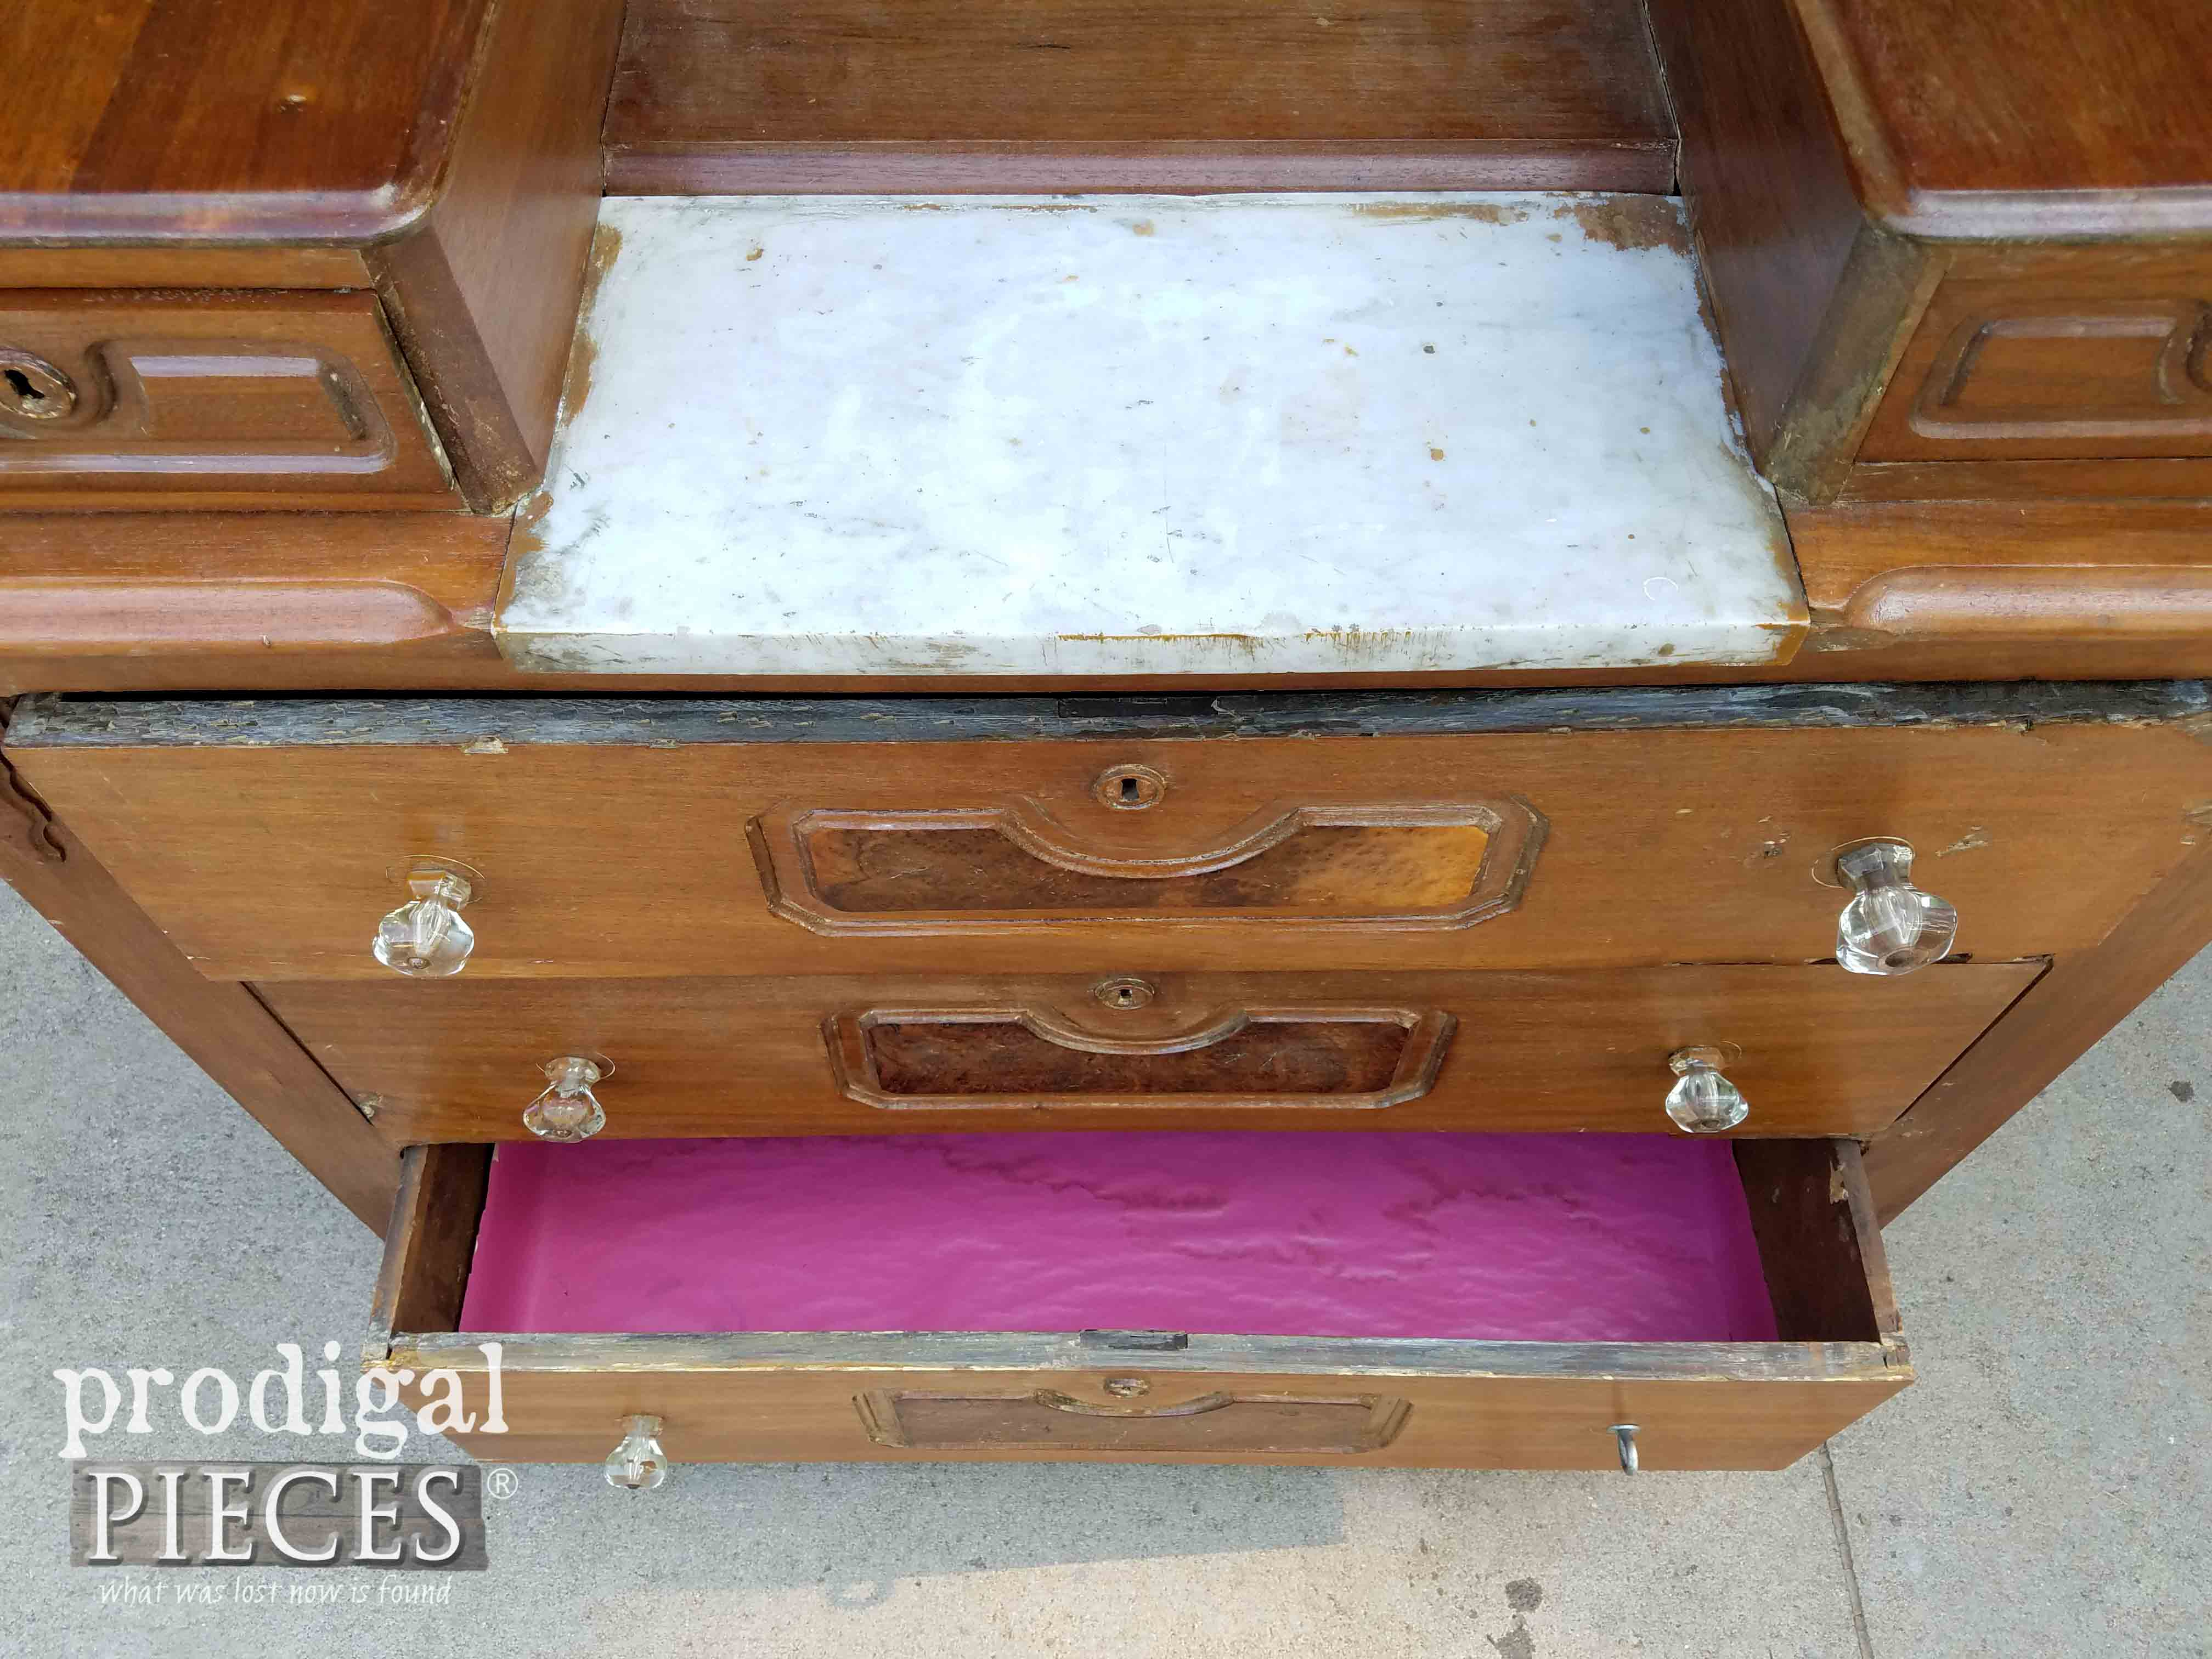 Open Chest Drawer with Pink Lining | prodigalpieces.com